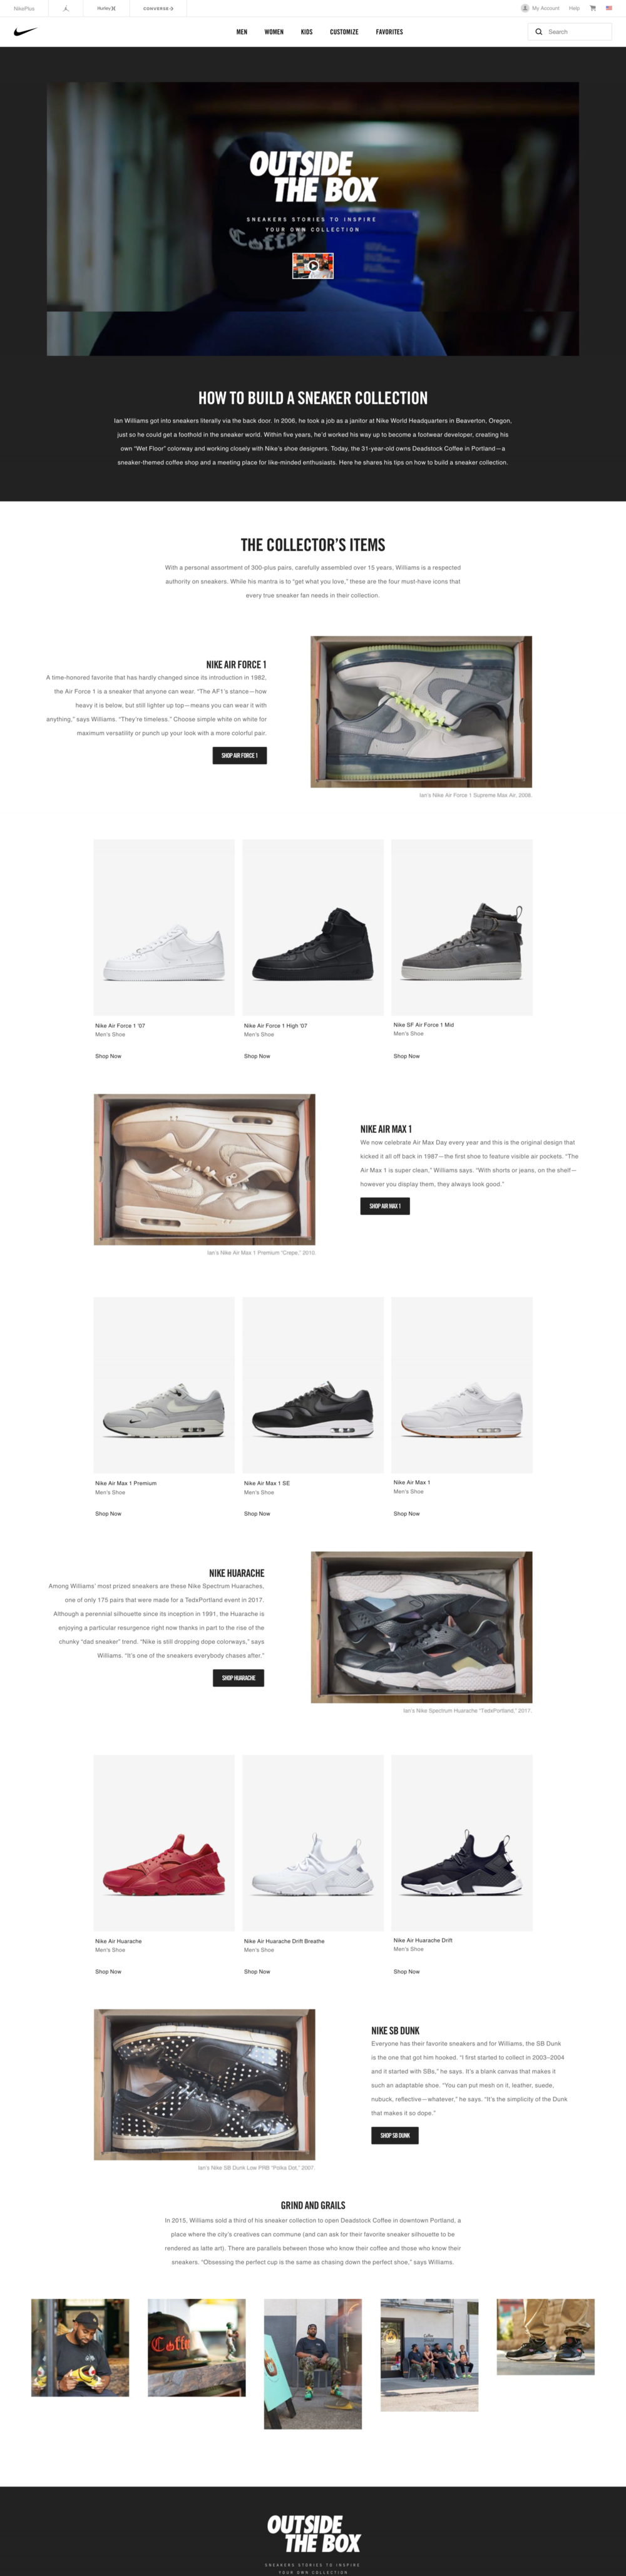 screencapture-nike-us-en_us-c-go-sneaker-collection-2018-10-11-11_38_36.png